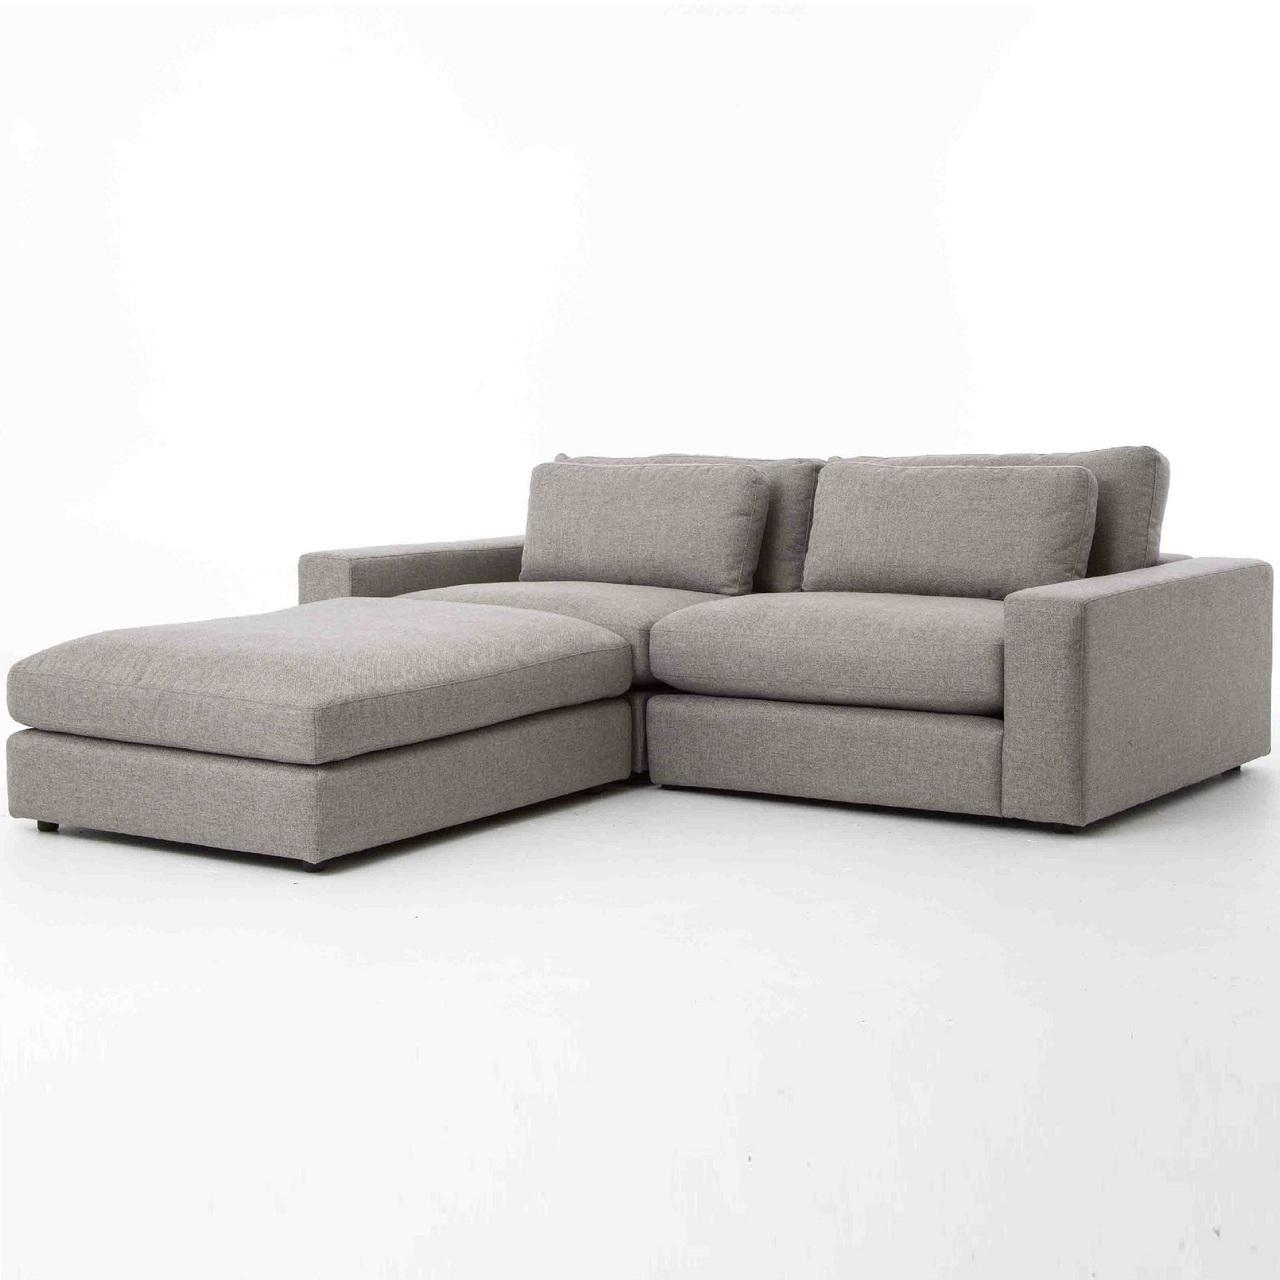 Sofas Center : Breathtaking Small Sectional Sofas Photo Concept Intended For Modern Small Sectional Sofas (View 6 of 20)